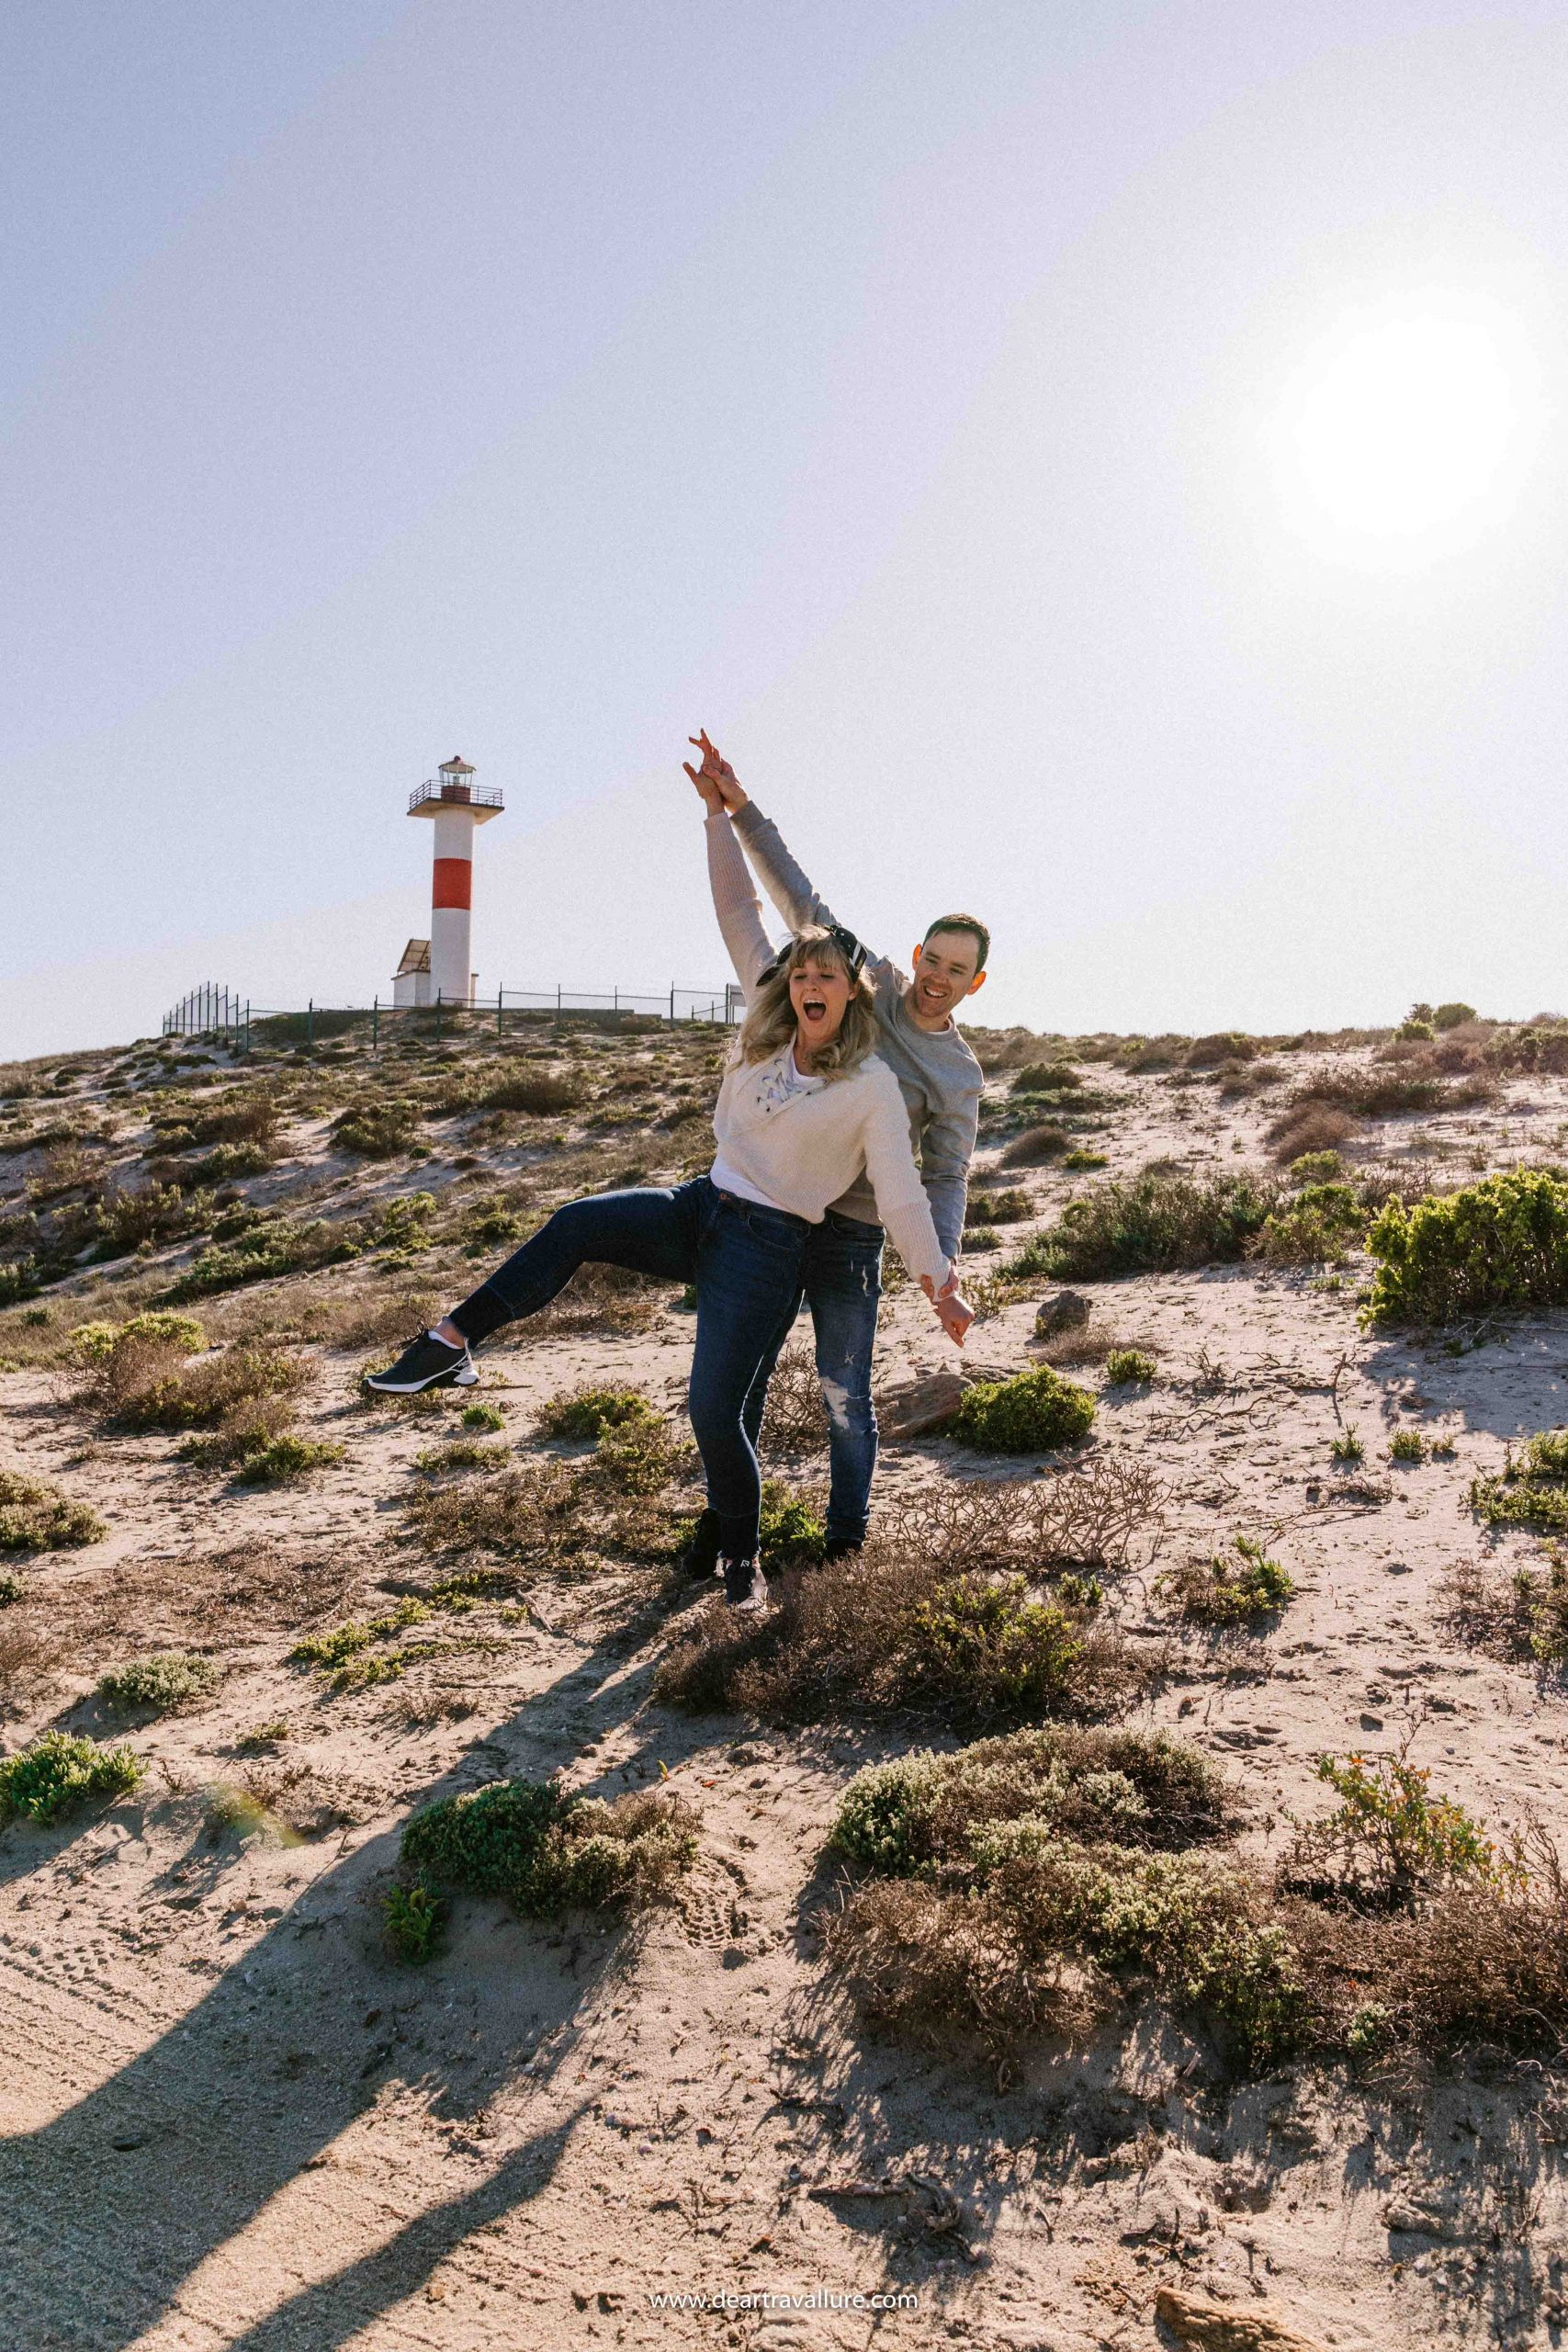 Byron and Tammy dancing by the Hondeklipbaai Lighthouse